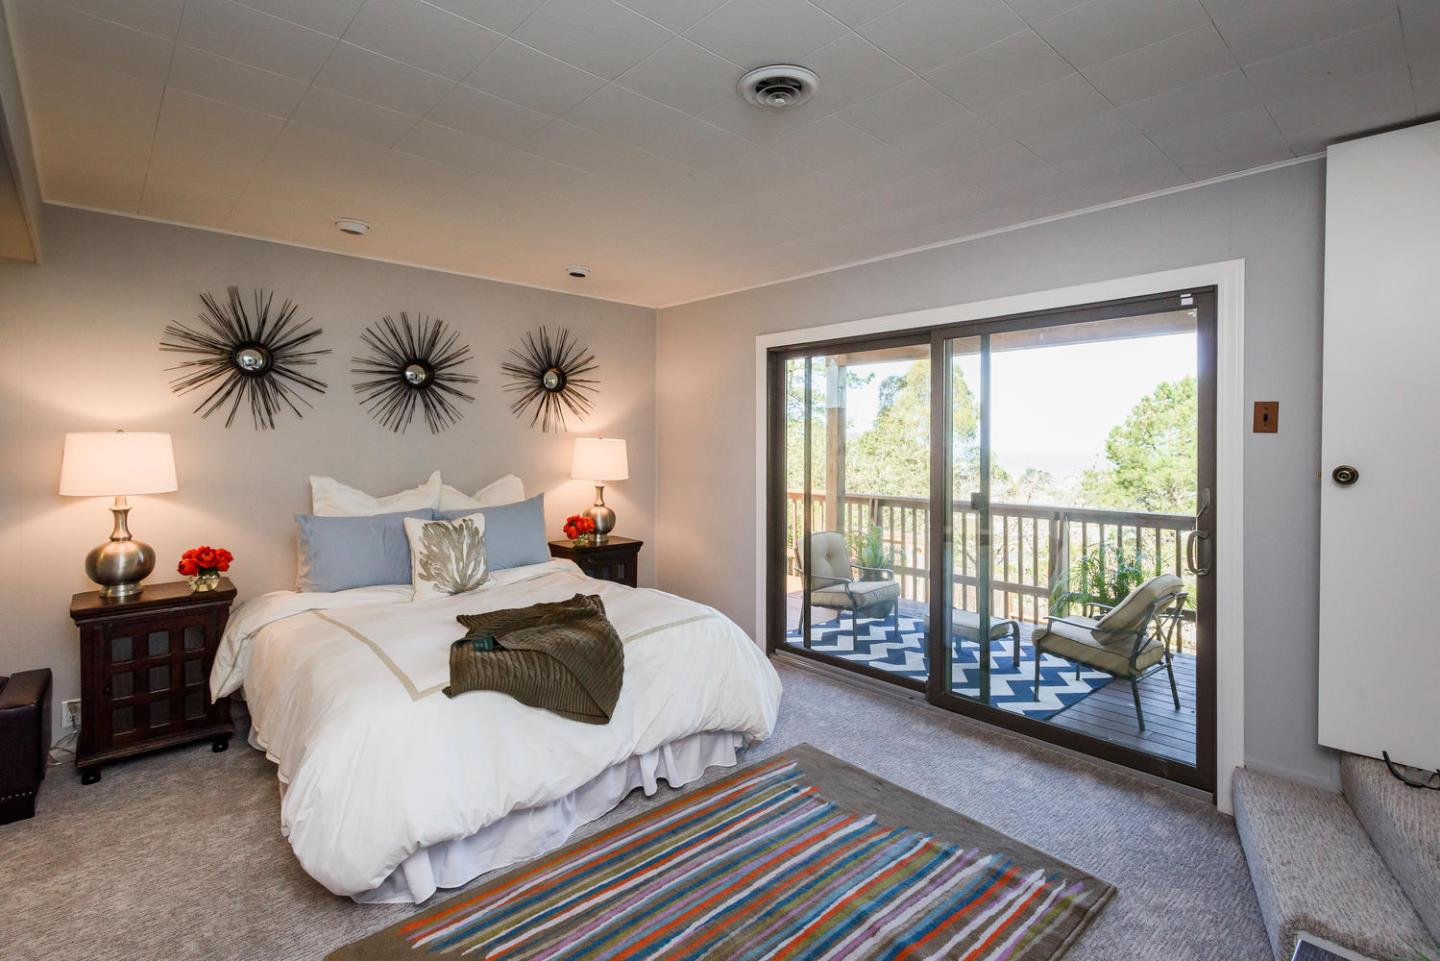 Additional photo for property listing at 1068 Crespi Dr  PACIFICA, CALIFORNIA 94044